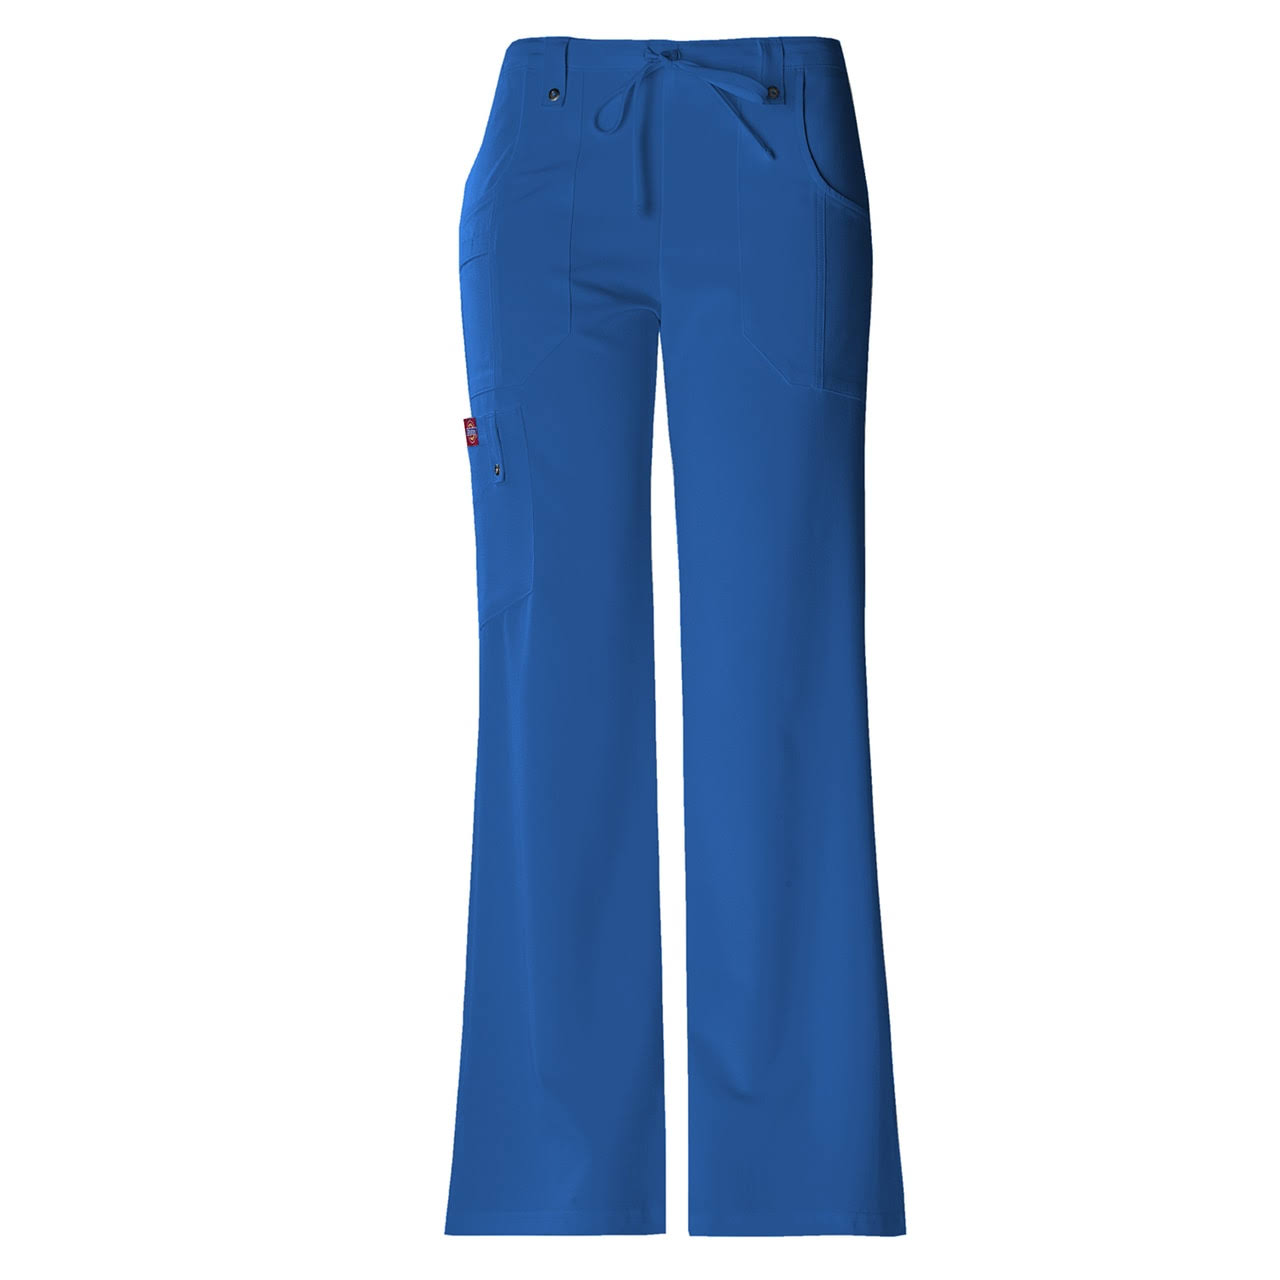 Dickies Women's Xtreme Stretch Fit Drawstring Flare Leg Pant - Royal, X-Large